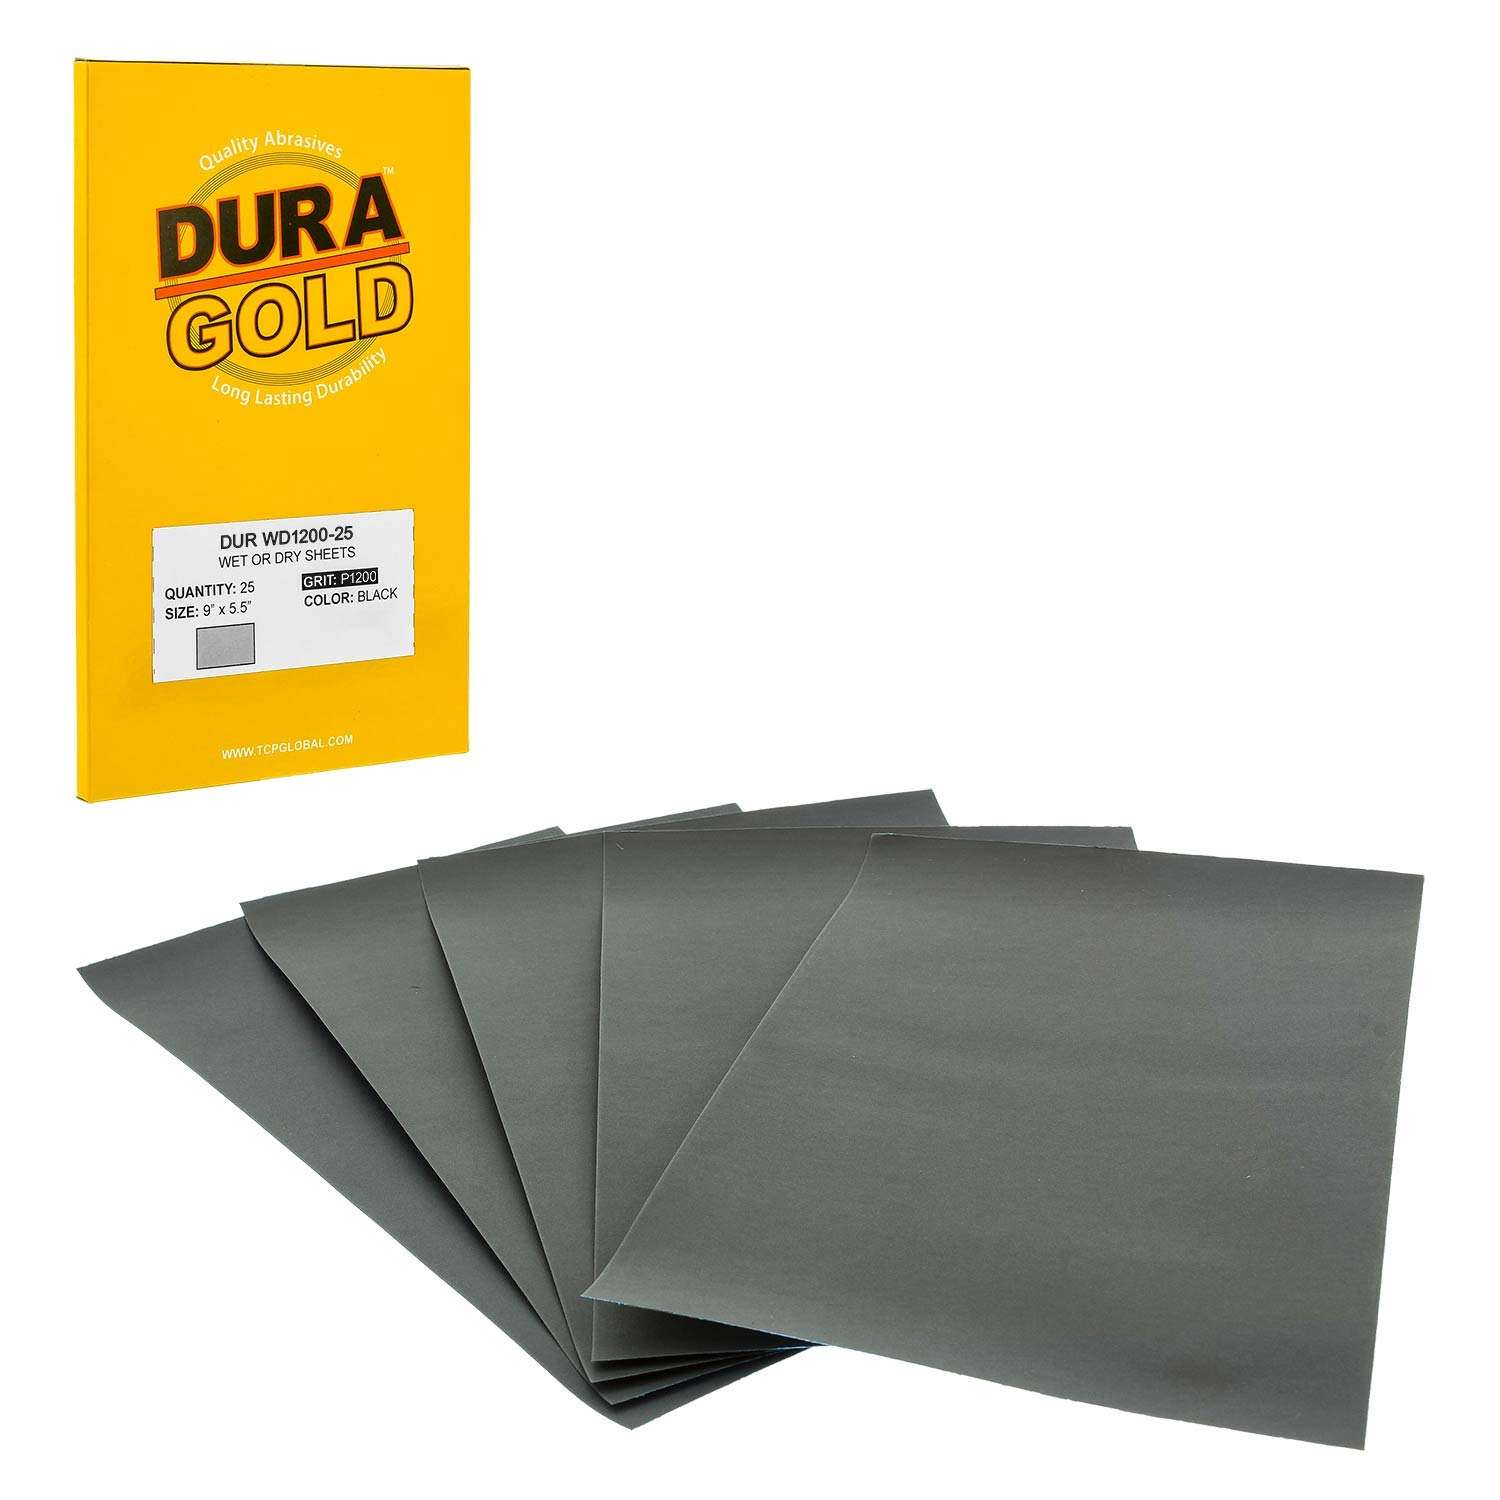 Box of 25 Sandpaper Finishing Sheets Color Sanding and Polishing for Automotive and Woodworking 600 Grit Premium Dura-Gold Professional Cut to 5-1//2 x 9 Sheets Wet or Dry